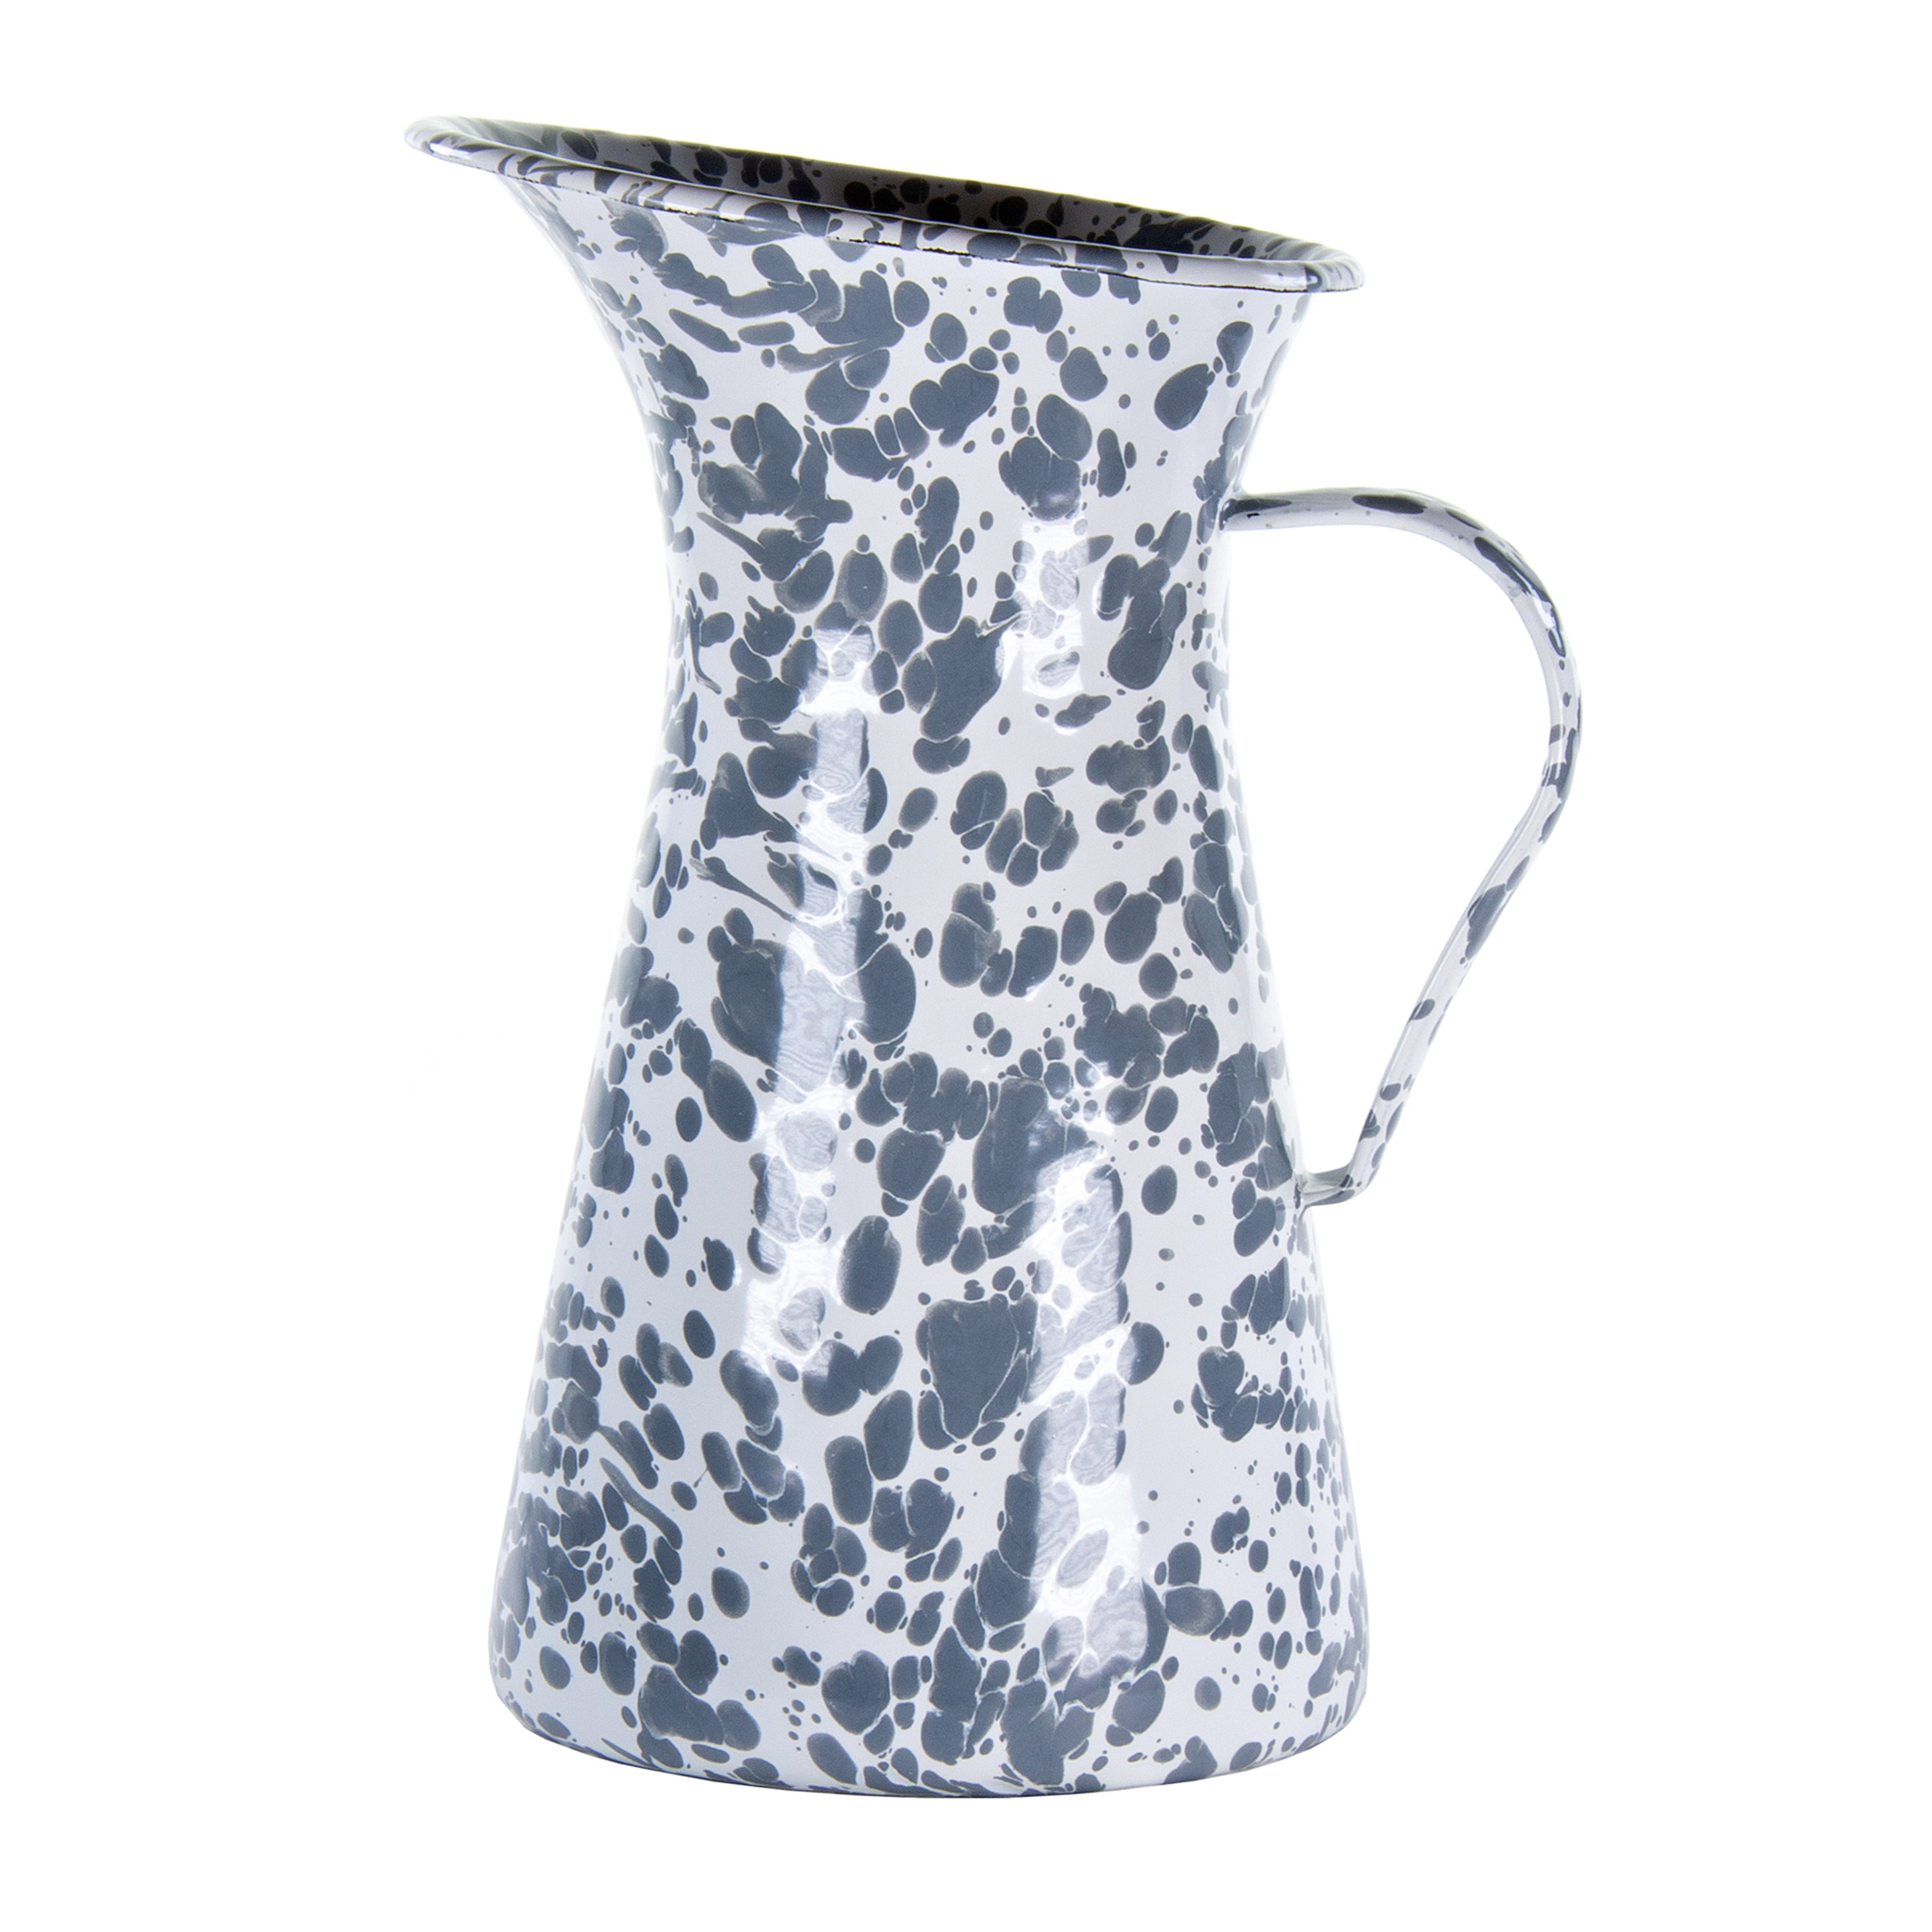 GY63 - Grey Swirl Medium Pitcher Image 1